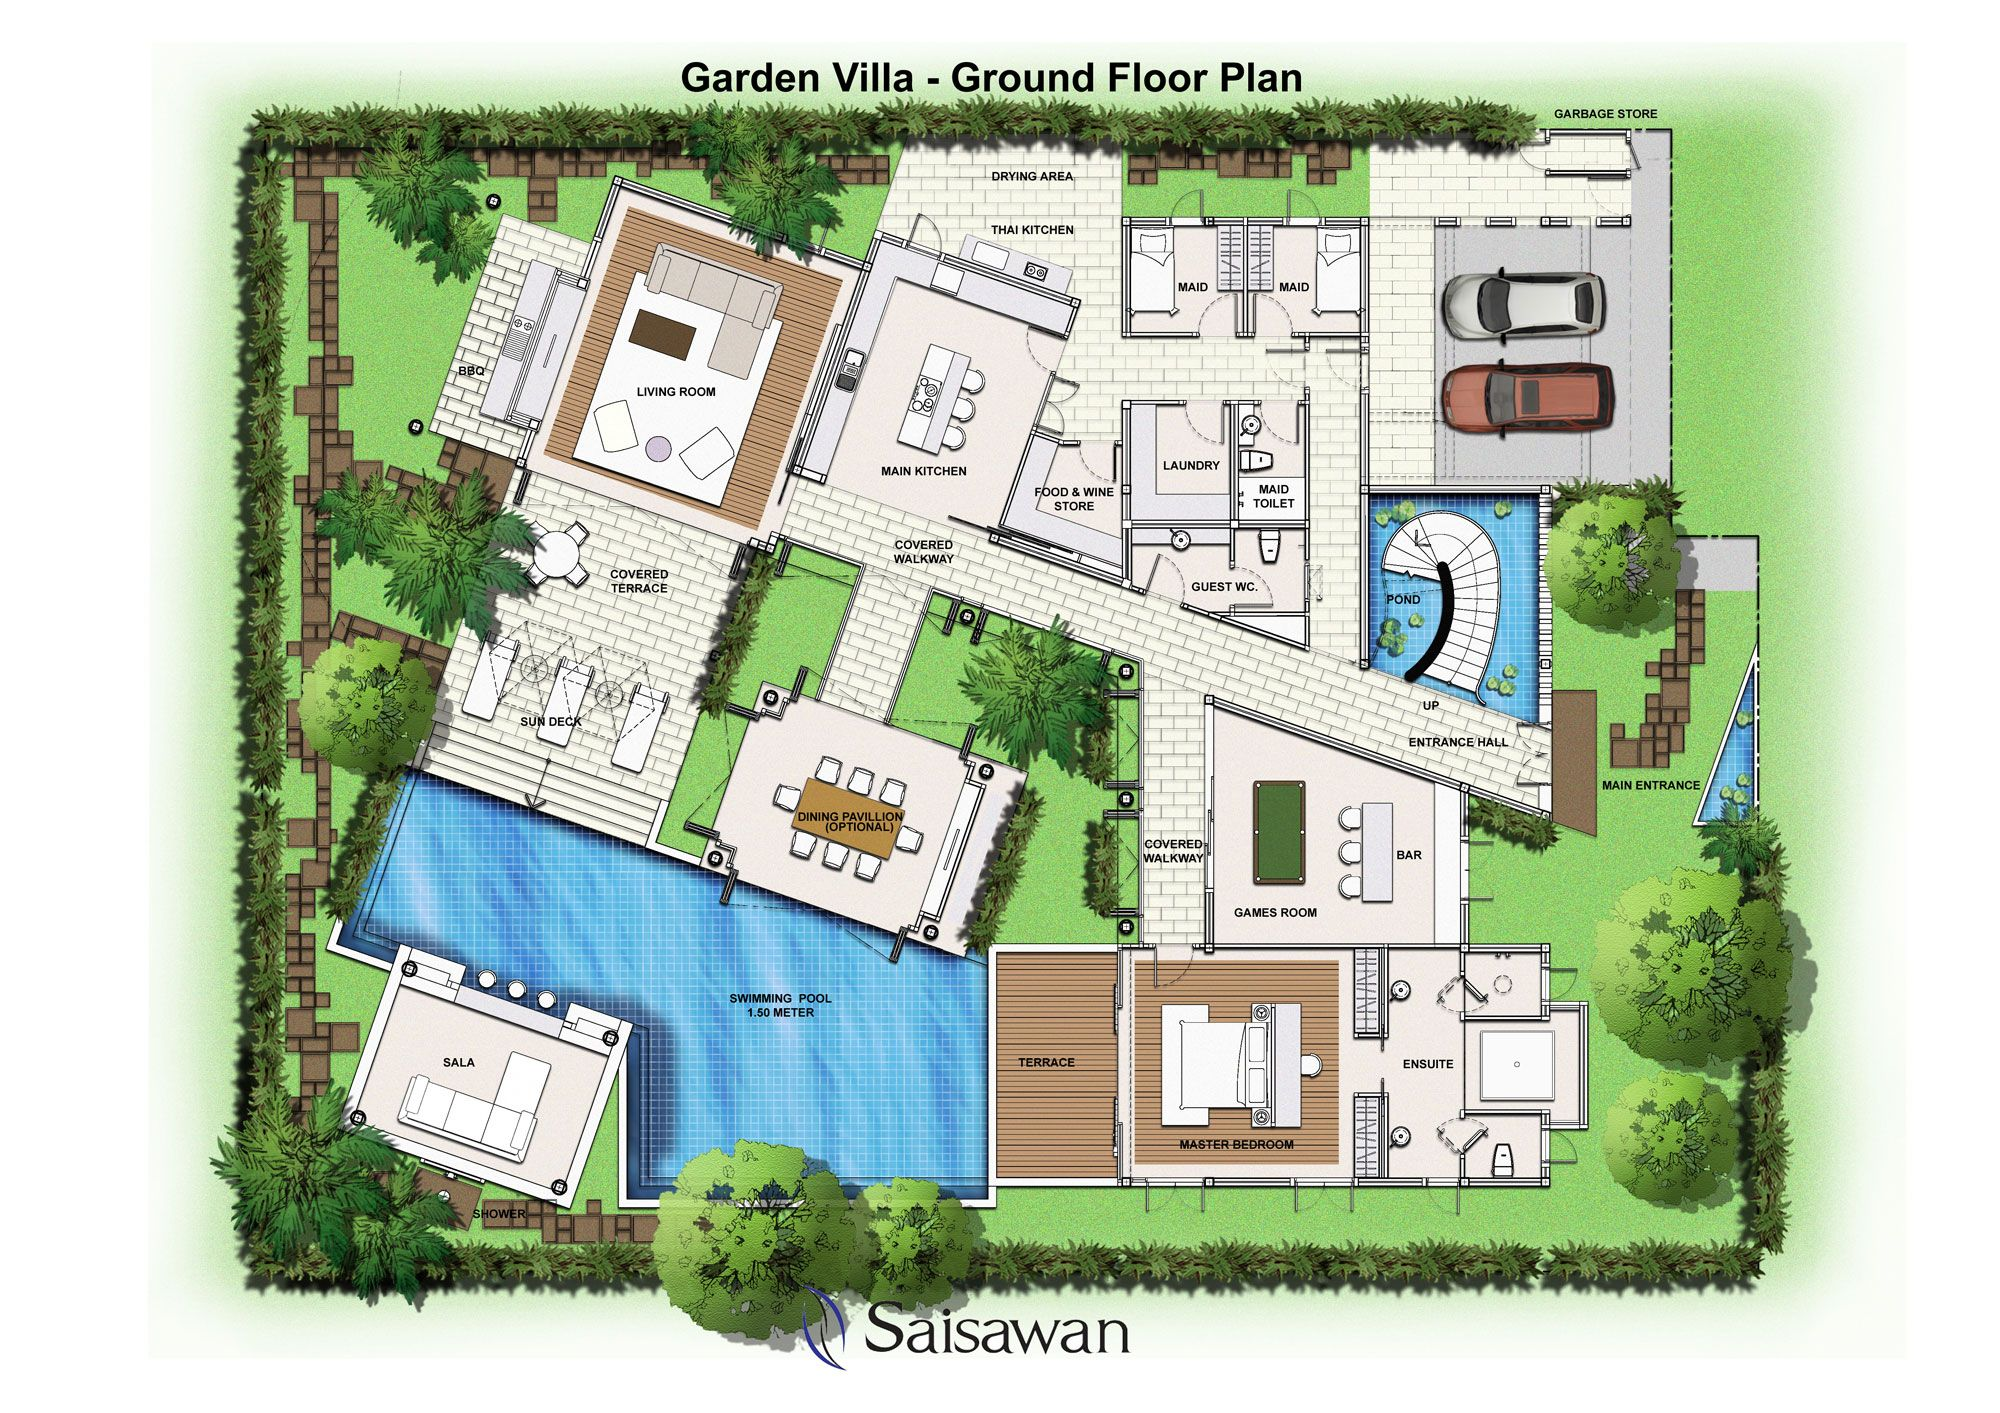 Saisawan garden villas ground floor plan house plans for Villa architecture design plans